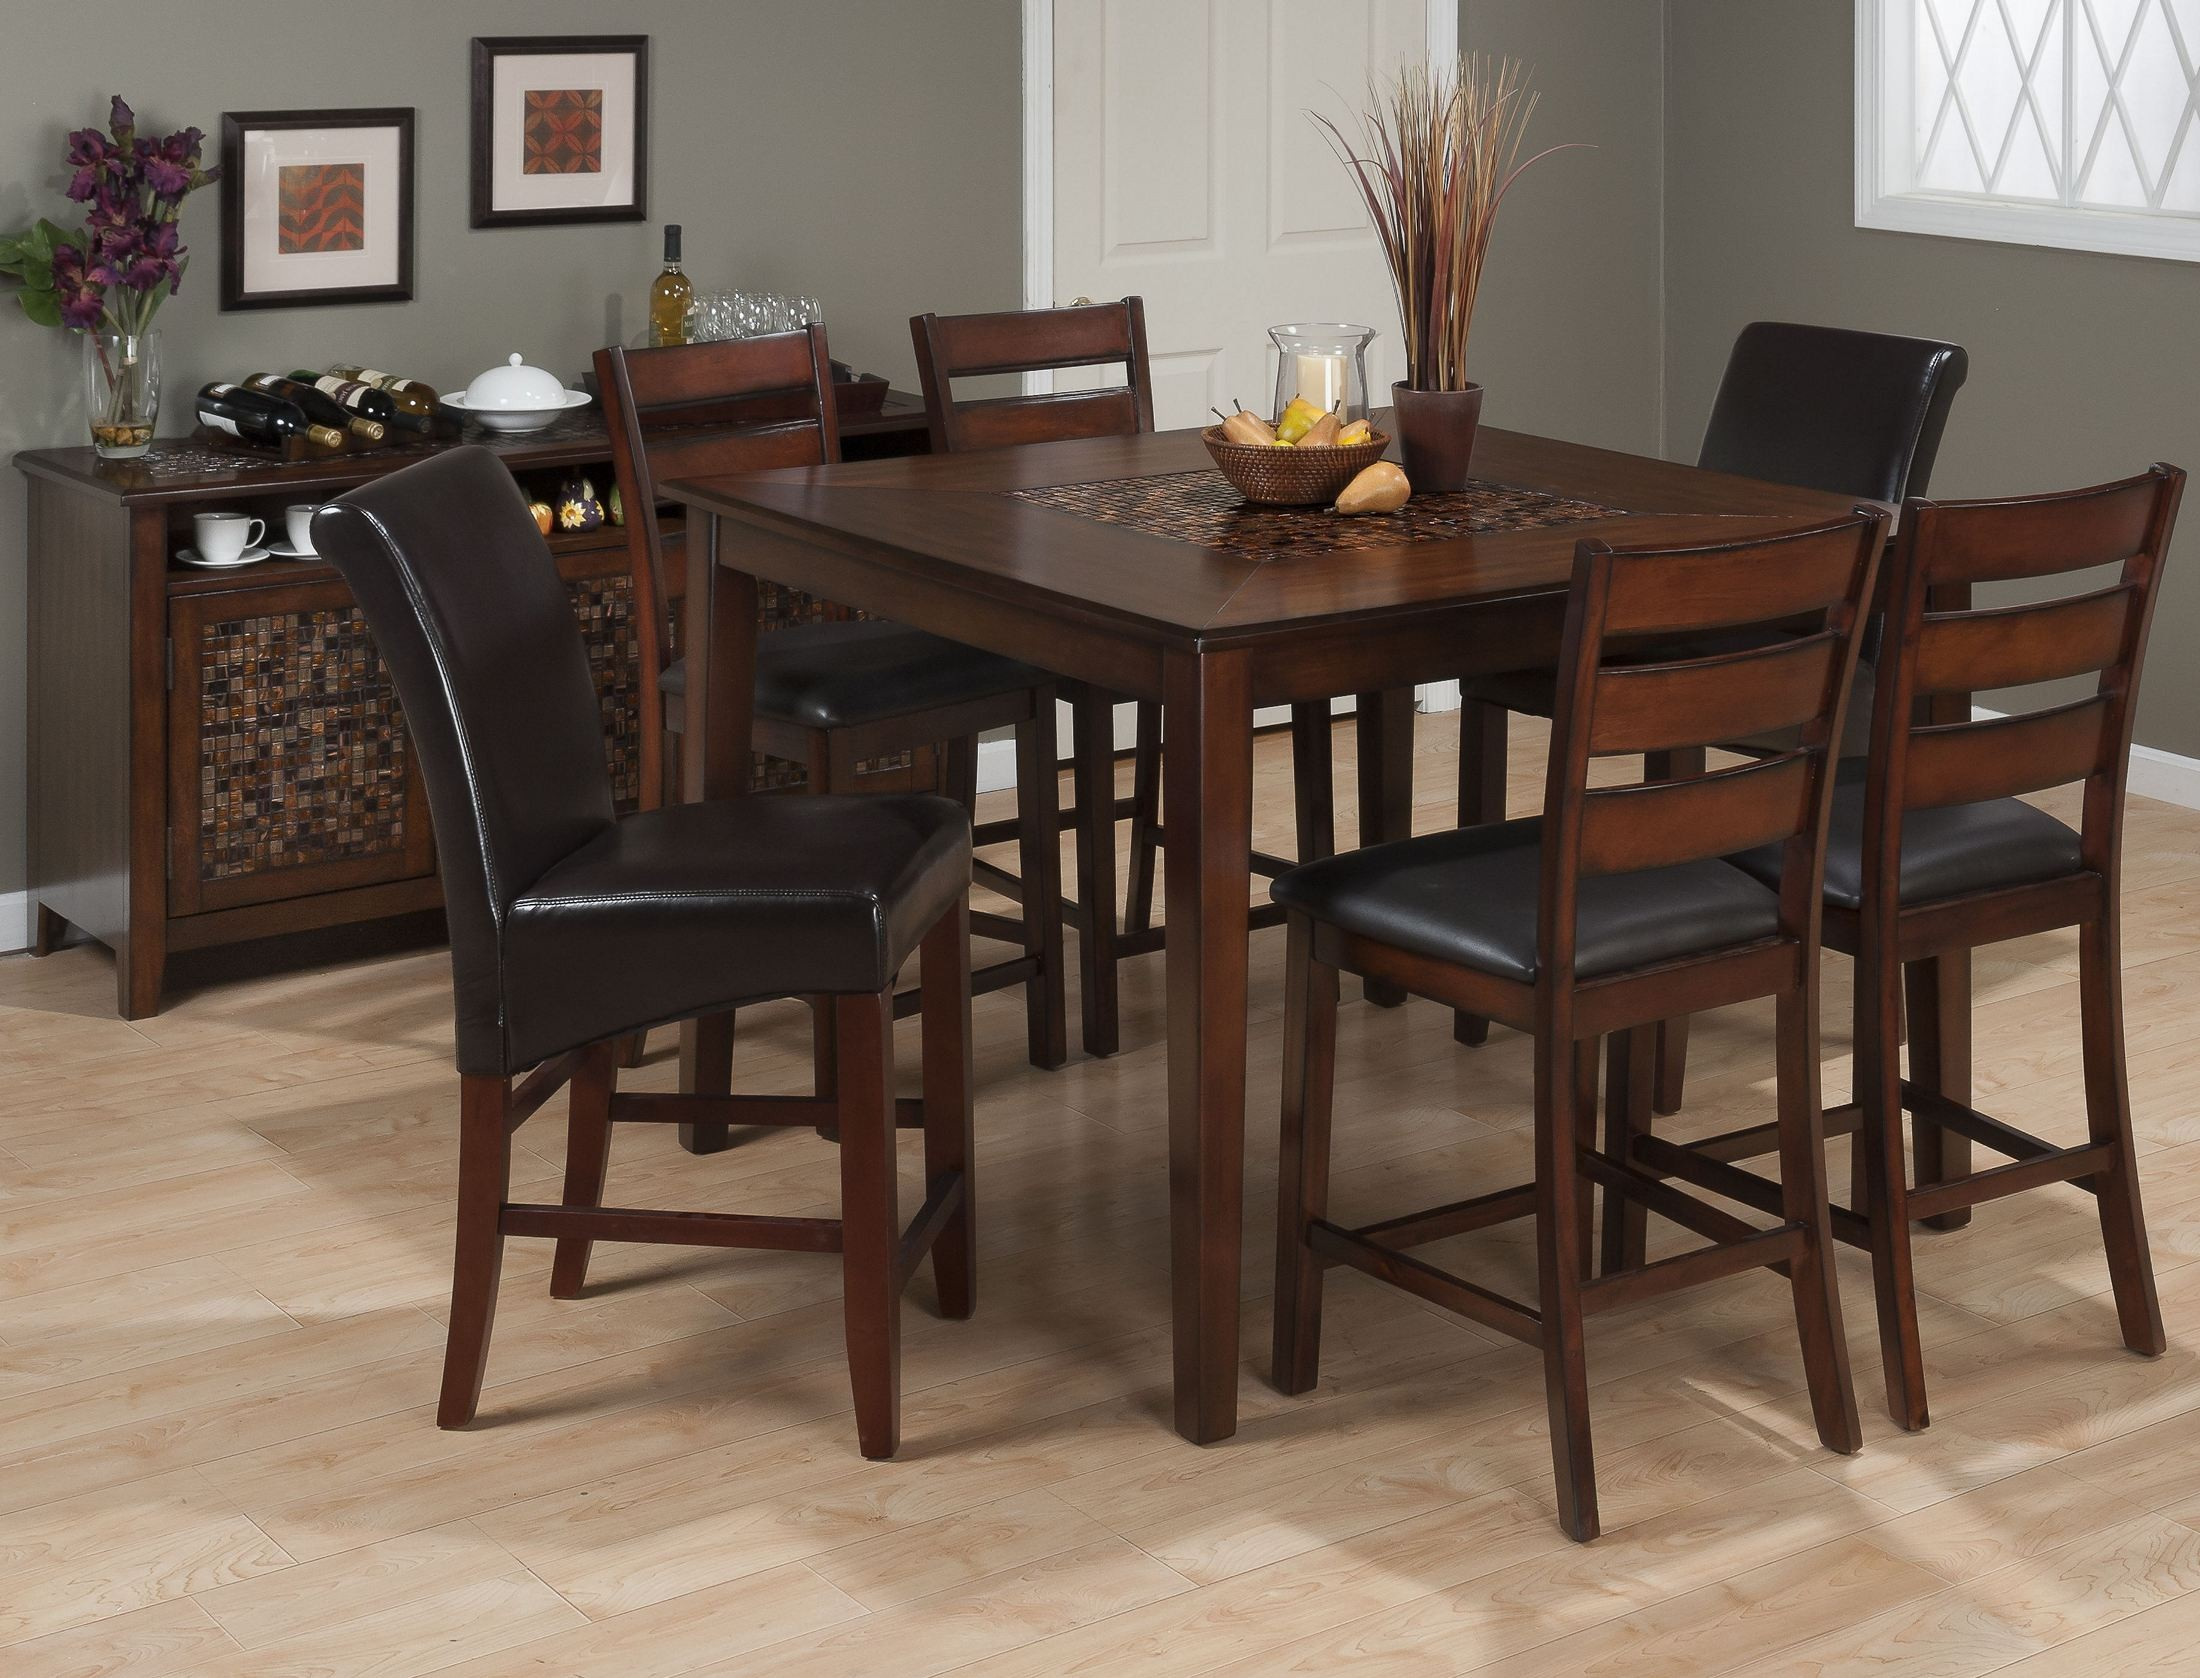 baroque brown mosaic inlay counter height dining room set